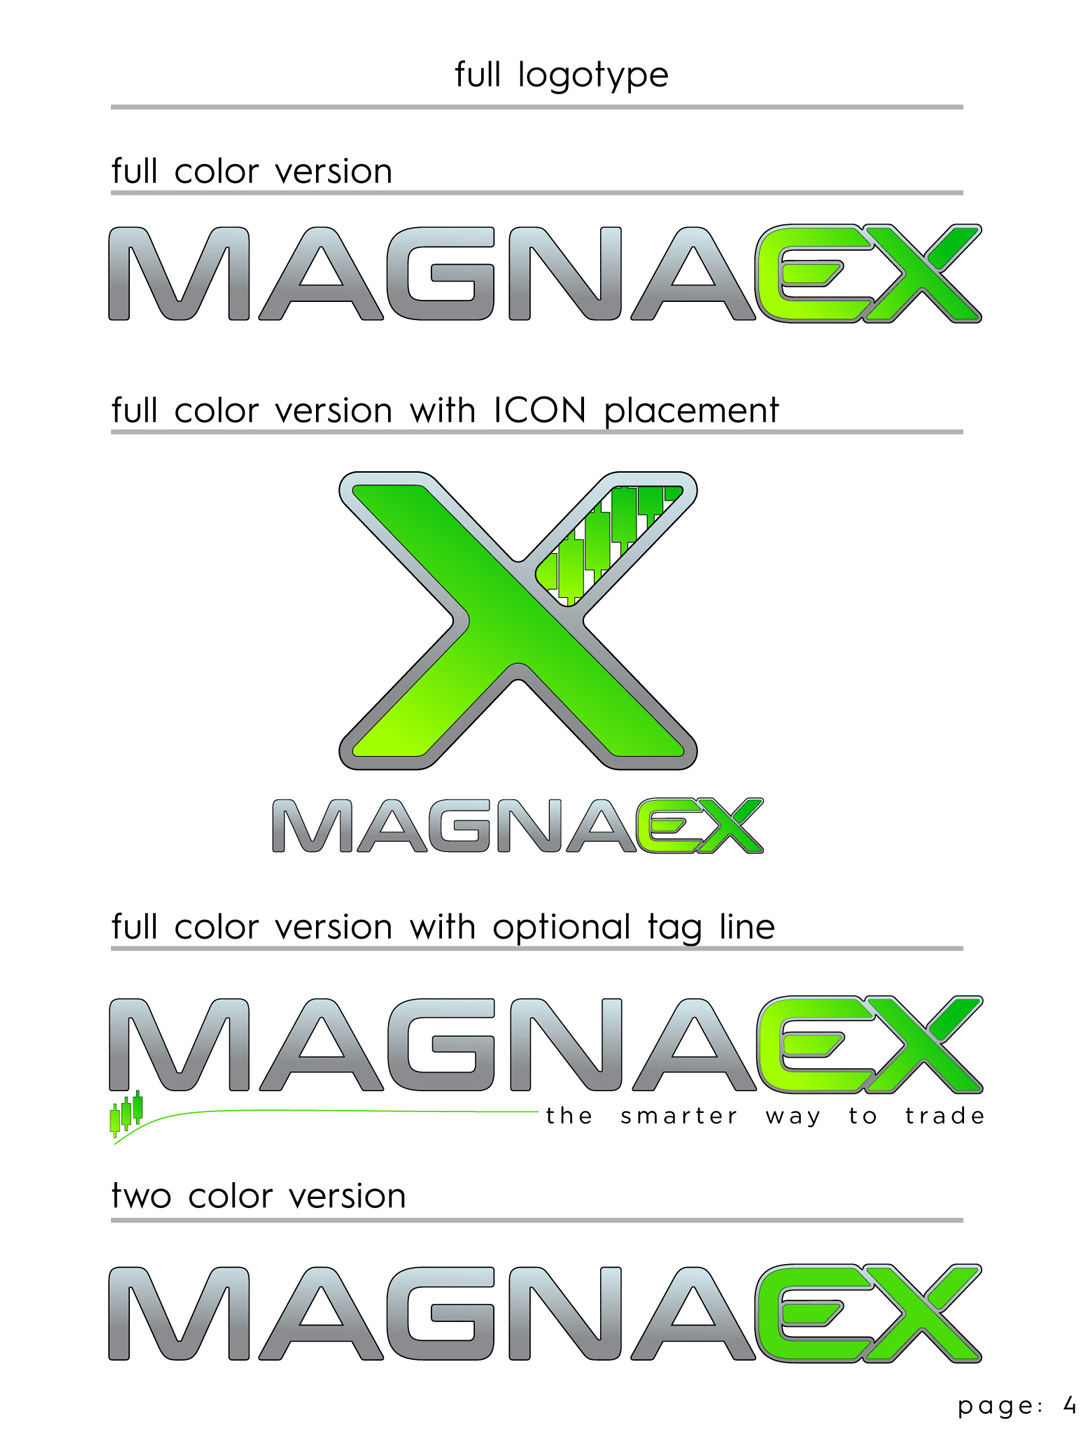 BMS MagnaEX LOGO Style Sheet Page 4